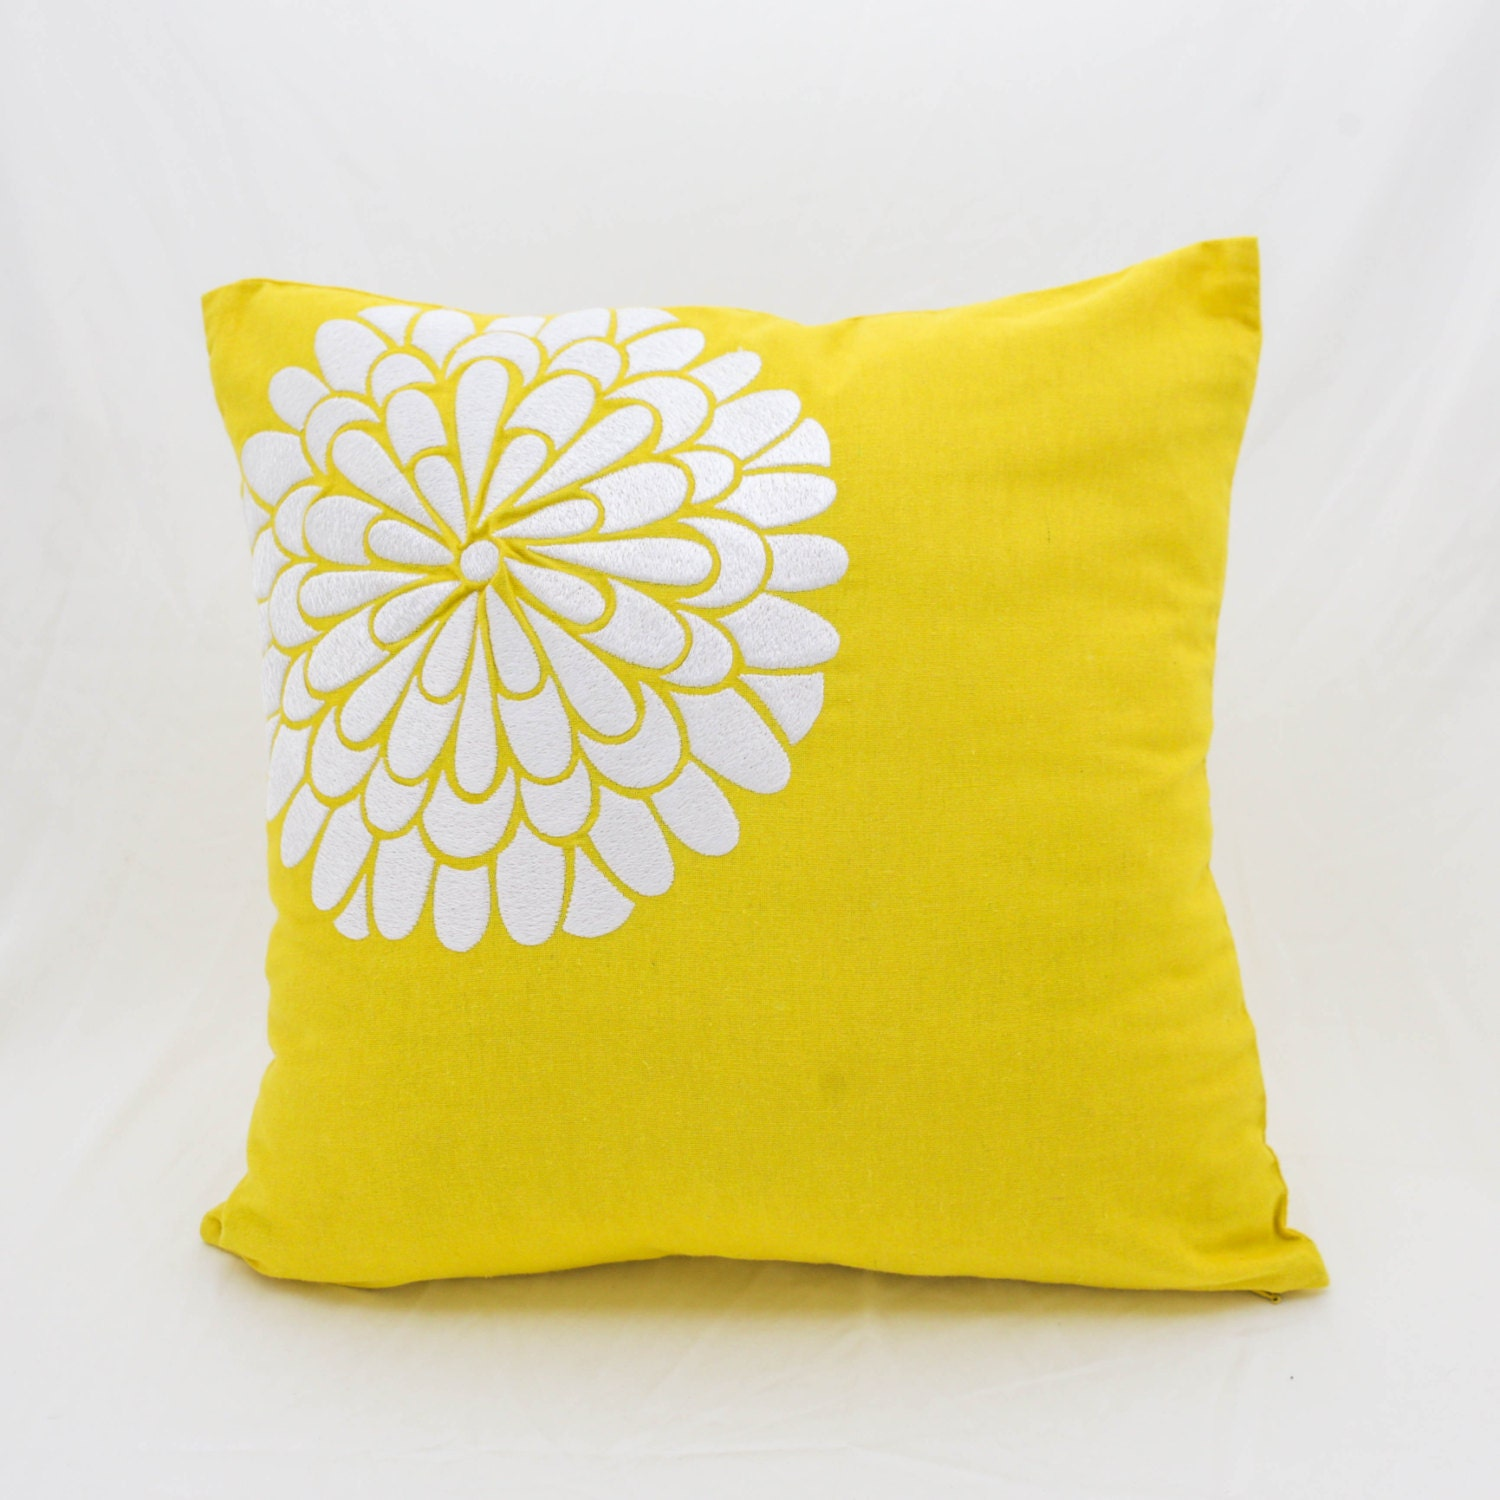 Decorative Floral Pillow Covers : Yellow Pillow Cover Floral Decorative Pillow Yellow Linen